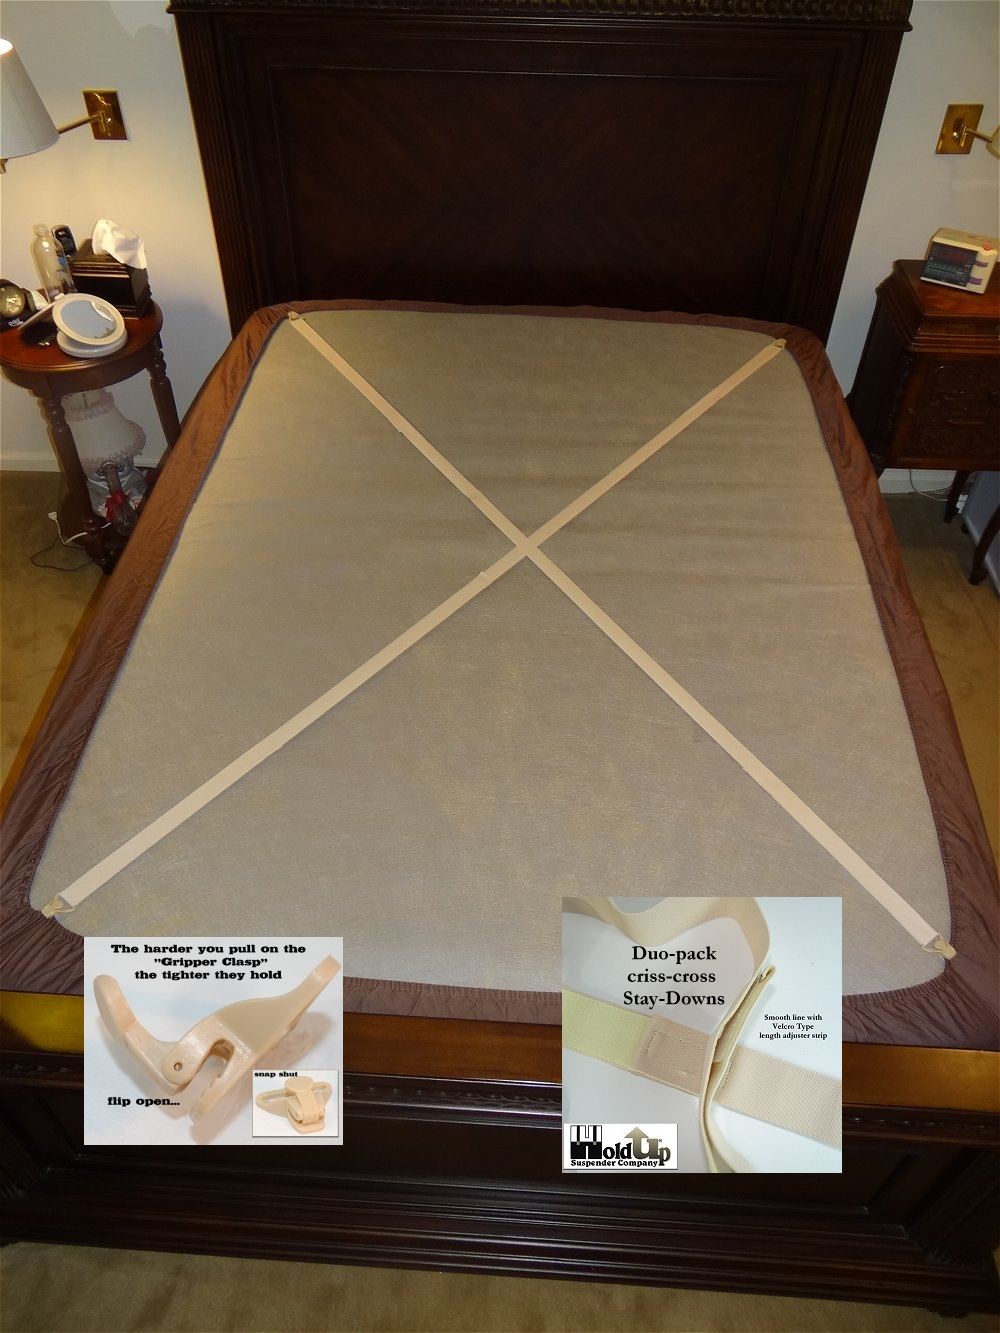 Bed Straps Or Ed Sheet Suspendewrs Designed To Simply Crisscross Corner Any Size Mattress